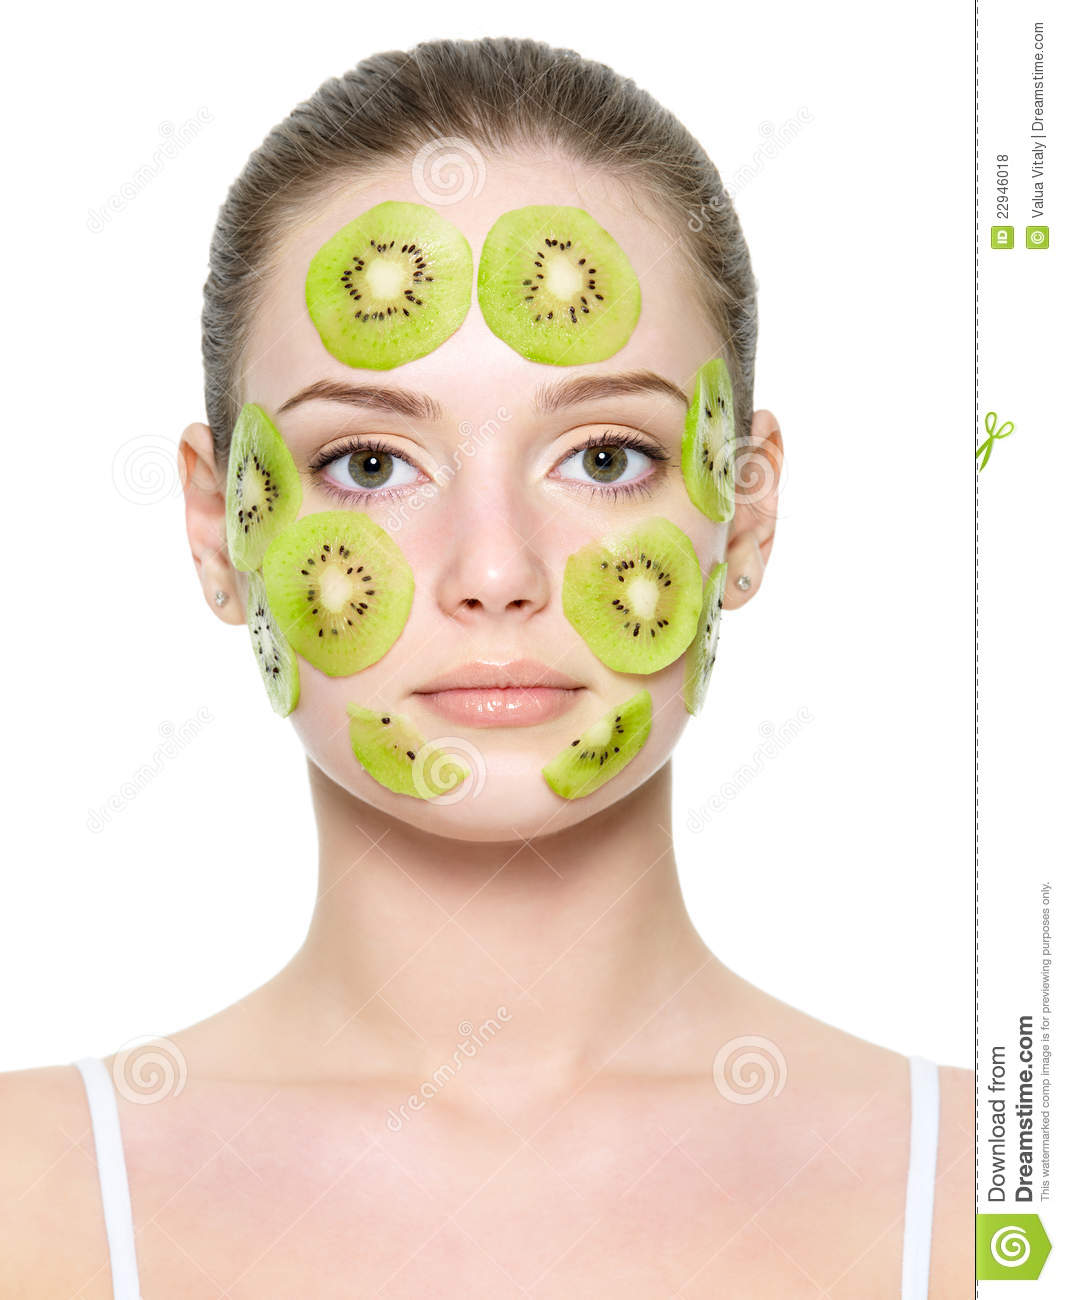 Excellent idea Facial fruit mask final, sorry